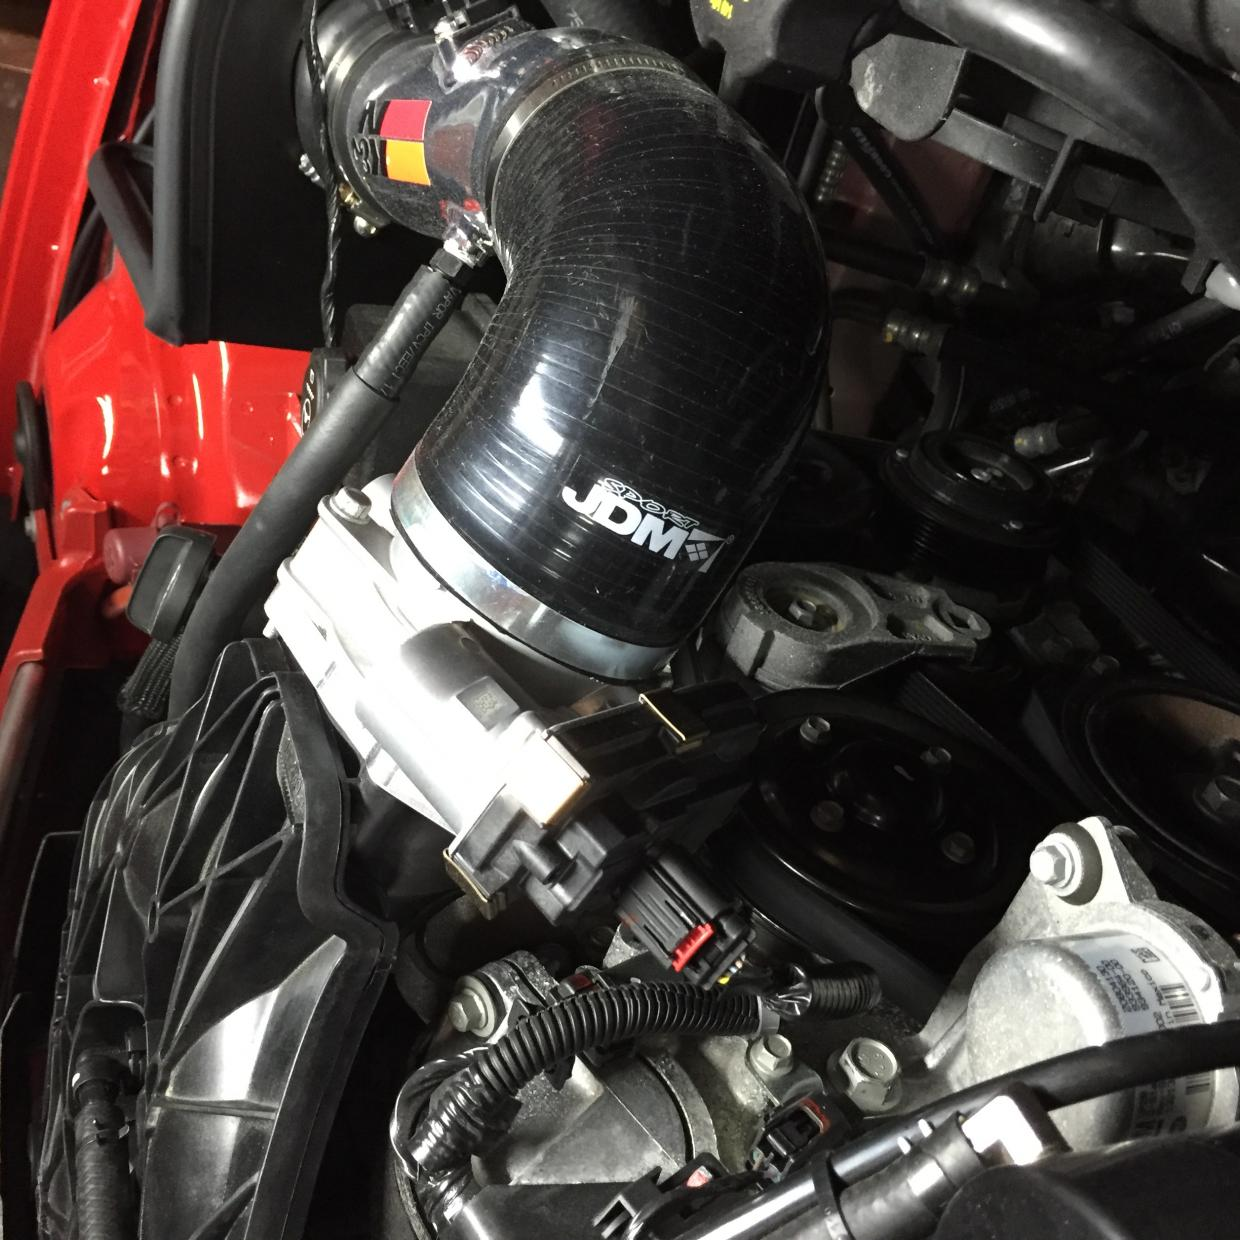 Overkill Products-80mm Throttle Body, Tuning Service, E85